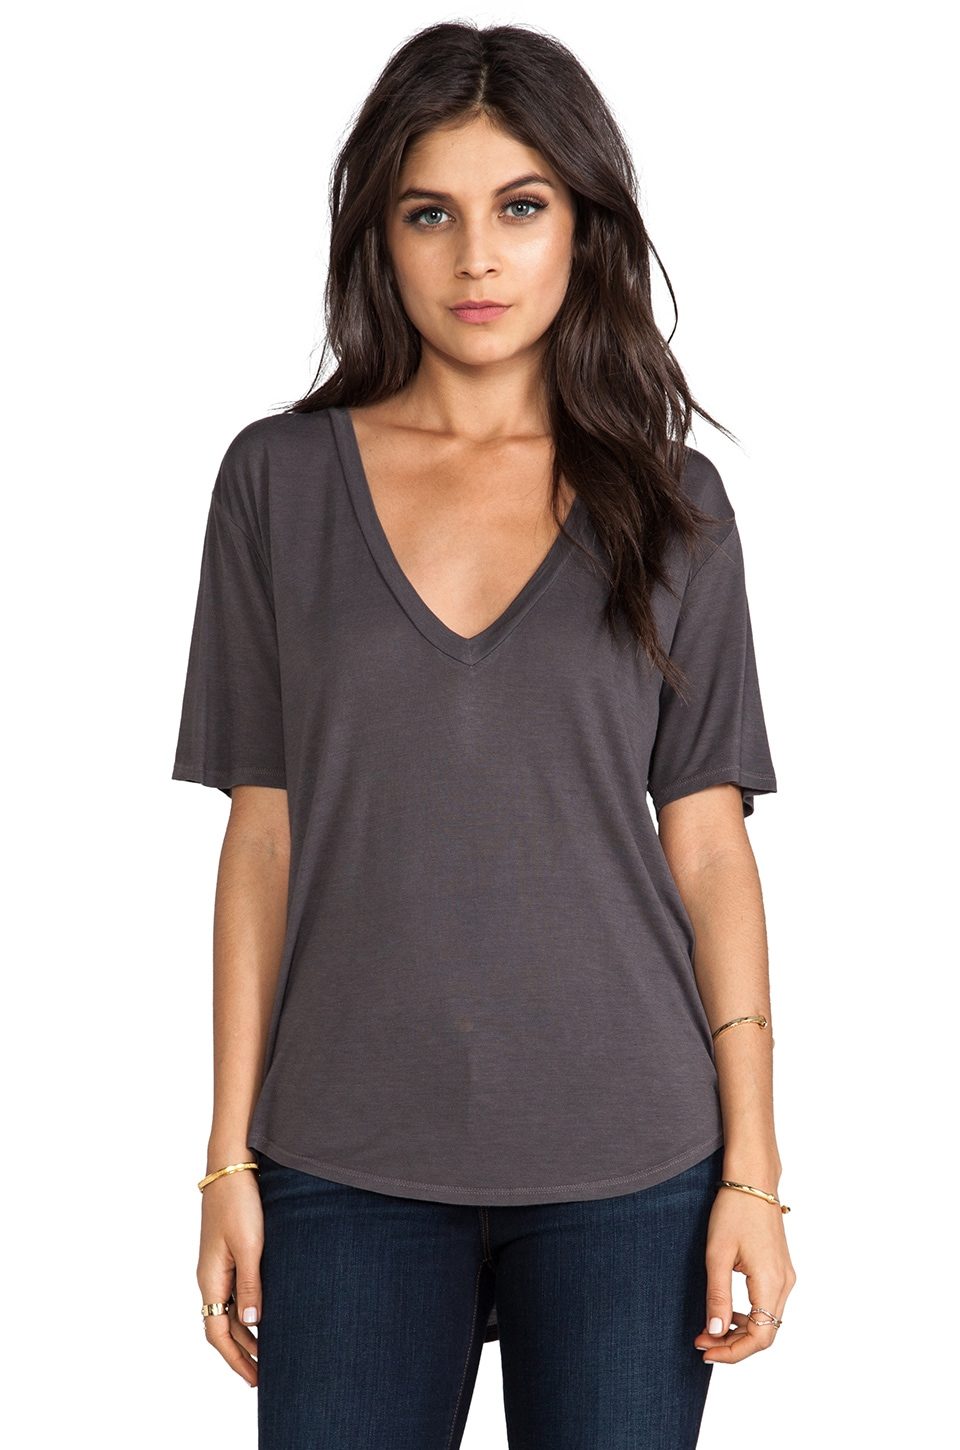 Enza Costa Silk Jersey Baseball V-Neck Tee in Carbon